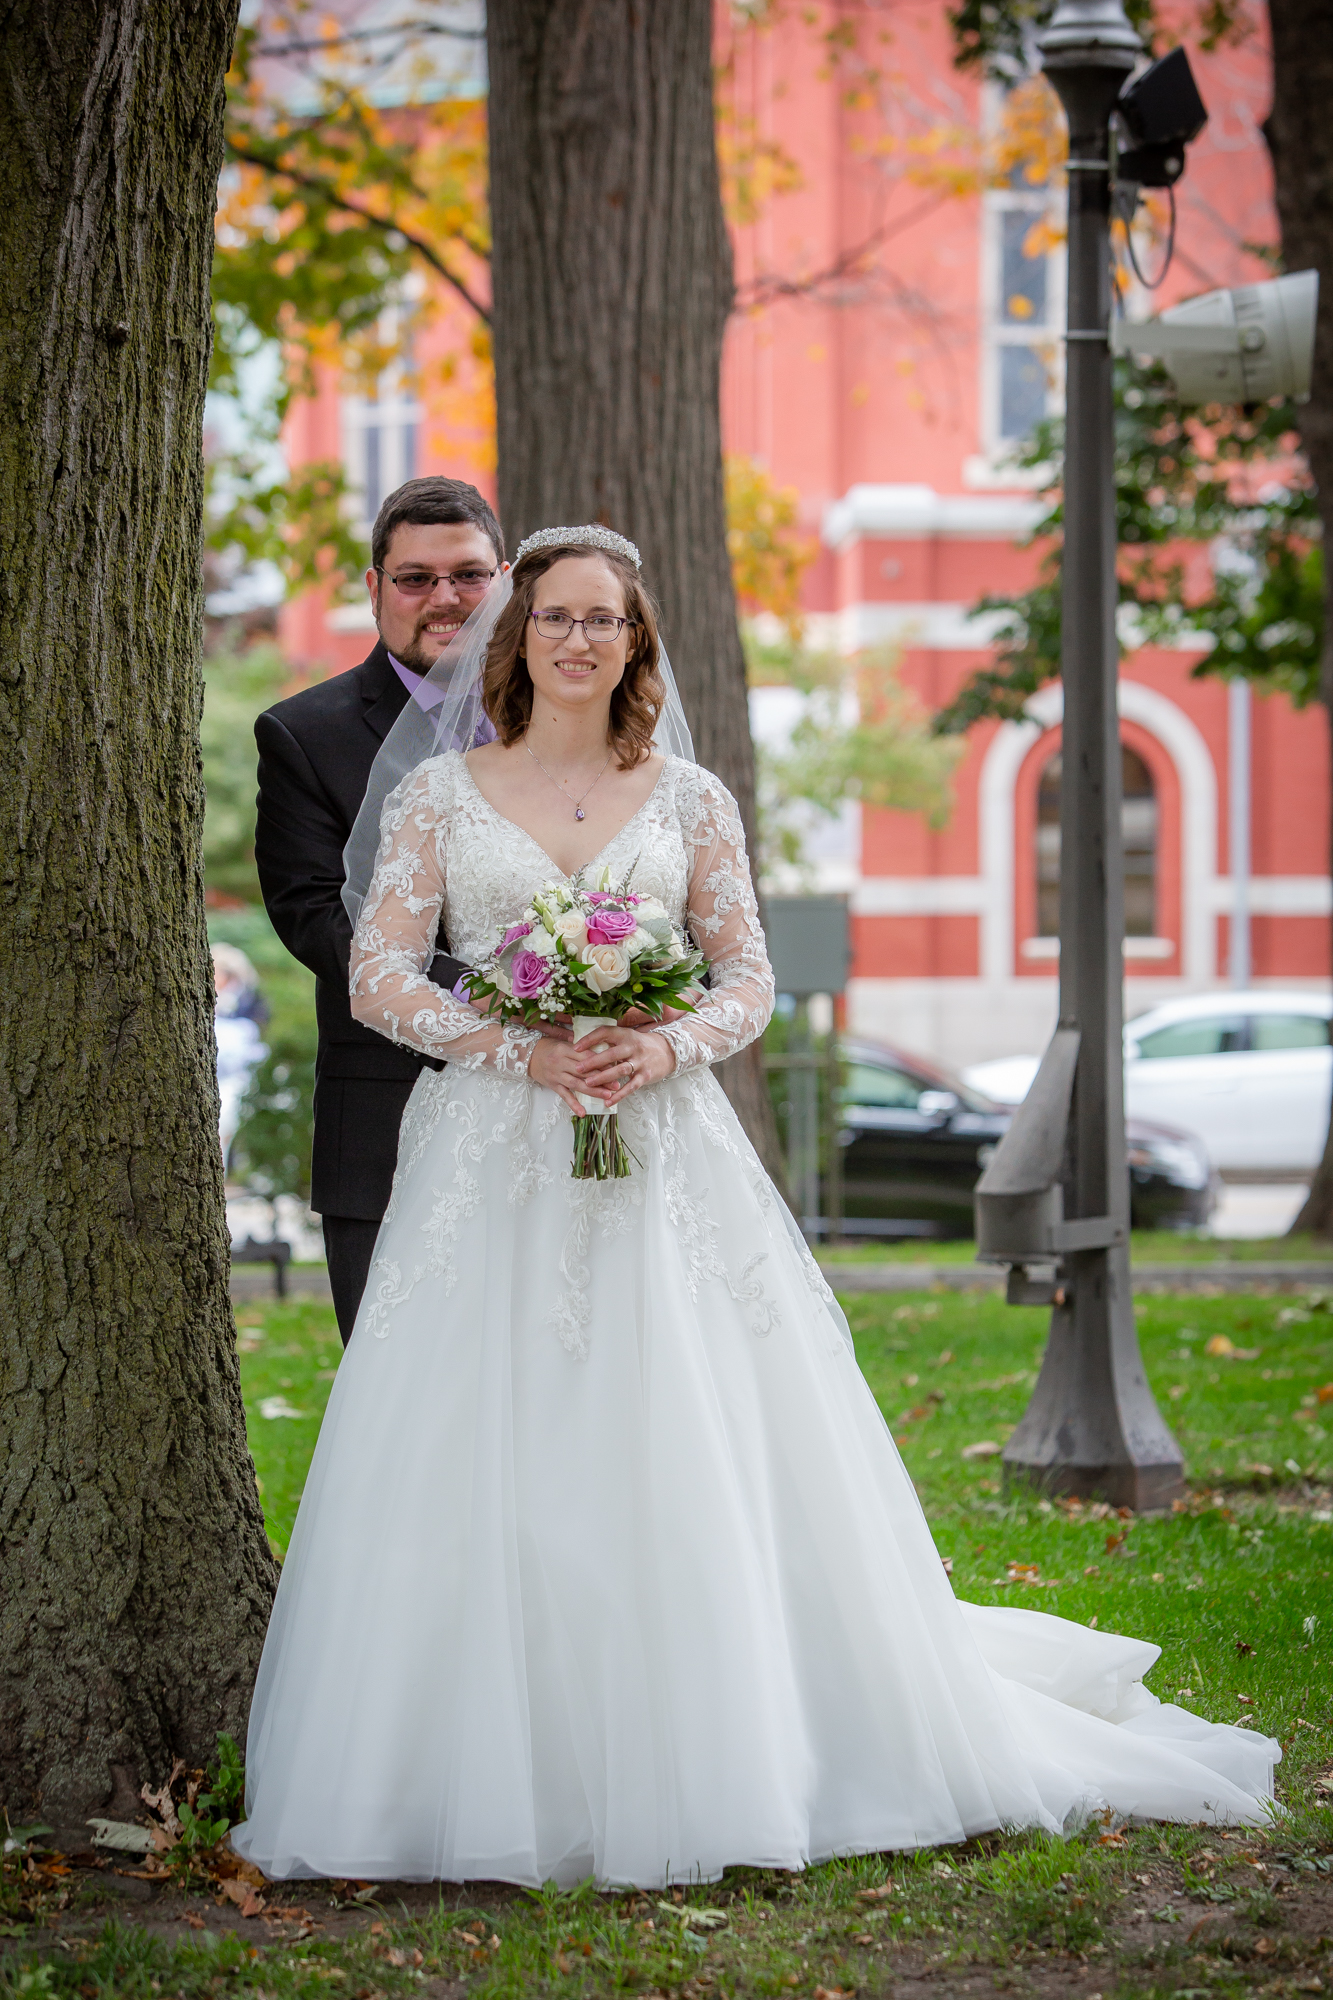 Penthouse-at-One-East-Avenue-Rochester-NY-Wedding-5231.jpg